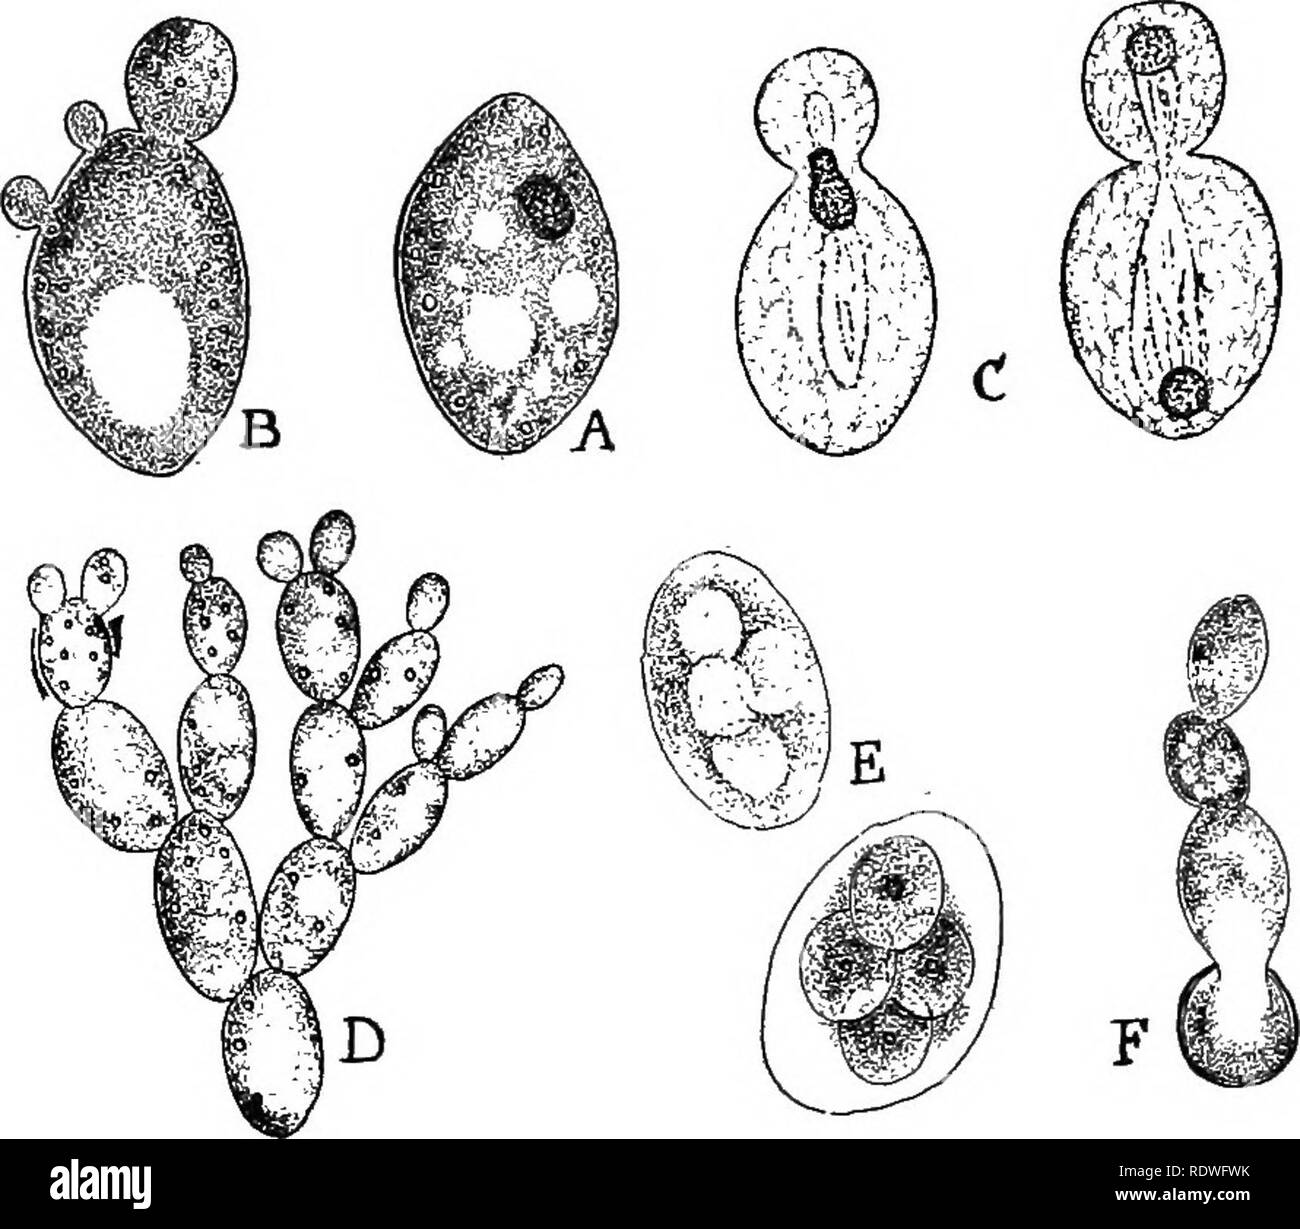 . Nature and development of plants. Botany. DEVELOPMENT OF PLANTS 249 freed by the decay of the ascus and when conditions are favorable, grow into the characteristic yeast cells, as shown in Fig. 161, F. (a) Fermentation.—These microscopic plants must be num- bered among those plants that are of the greatest economic value. Their importance is due to the fact that they decompose sugars upon which they feed into CO2 and alcohol, a change called fer- mentation. The extensive brewing and distilling industries all. Fig. 161. The yeast plant, Saccharomyces: A, single plant, B, plant producing three - Stock Image